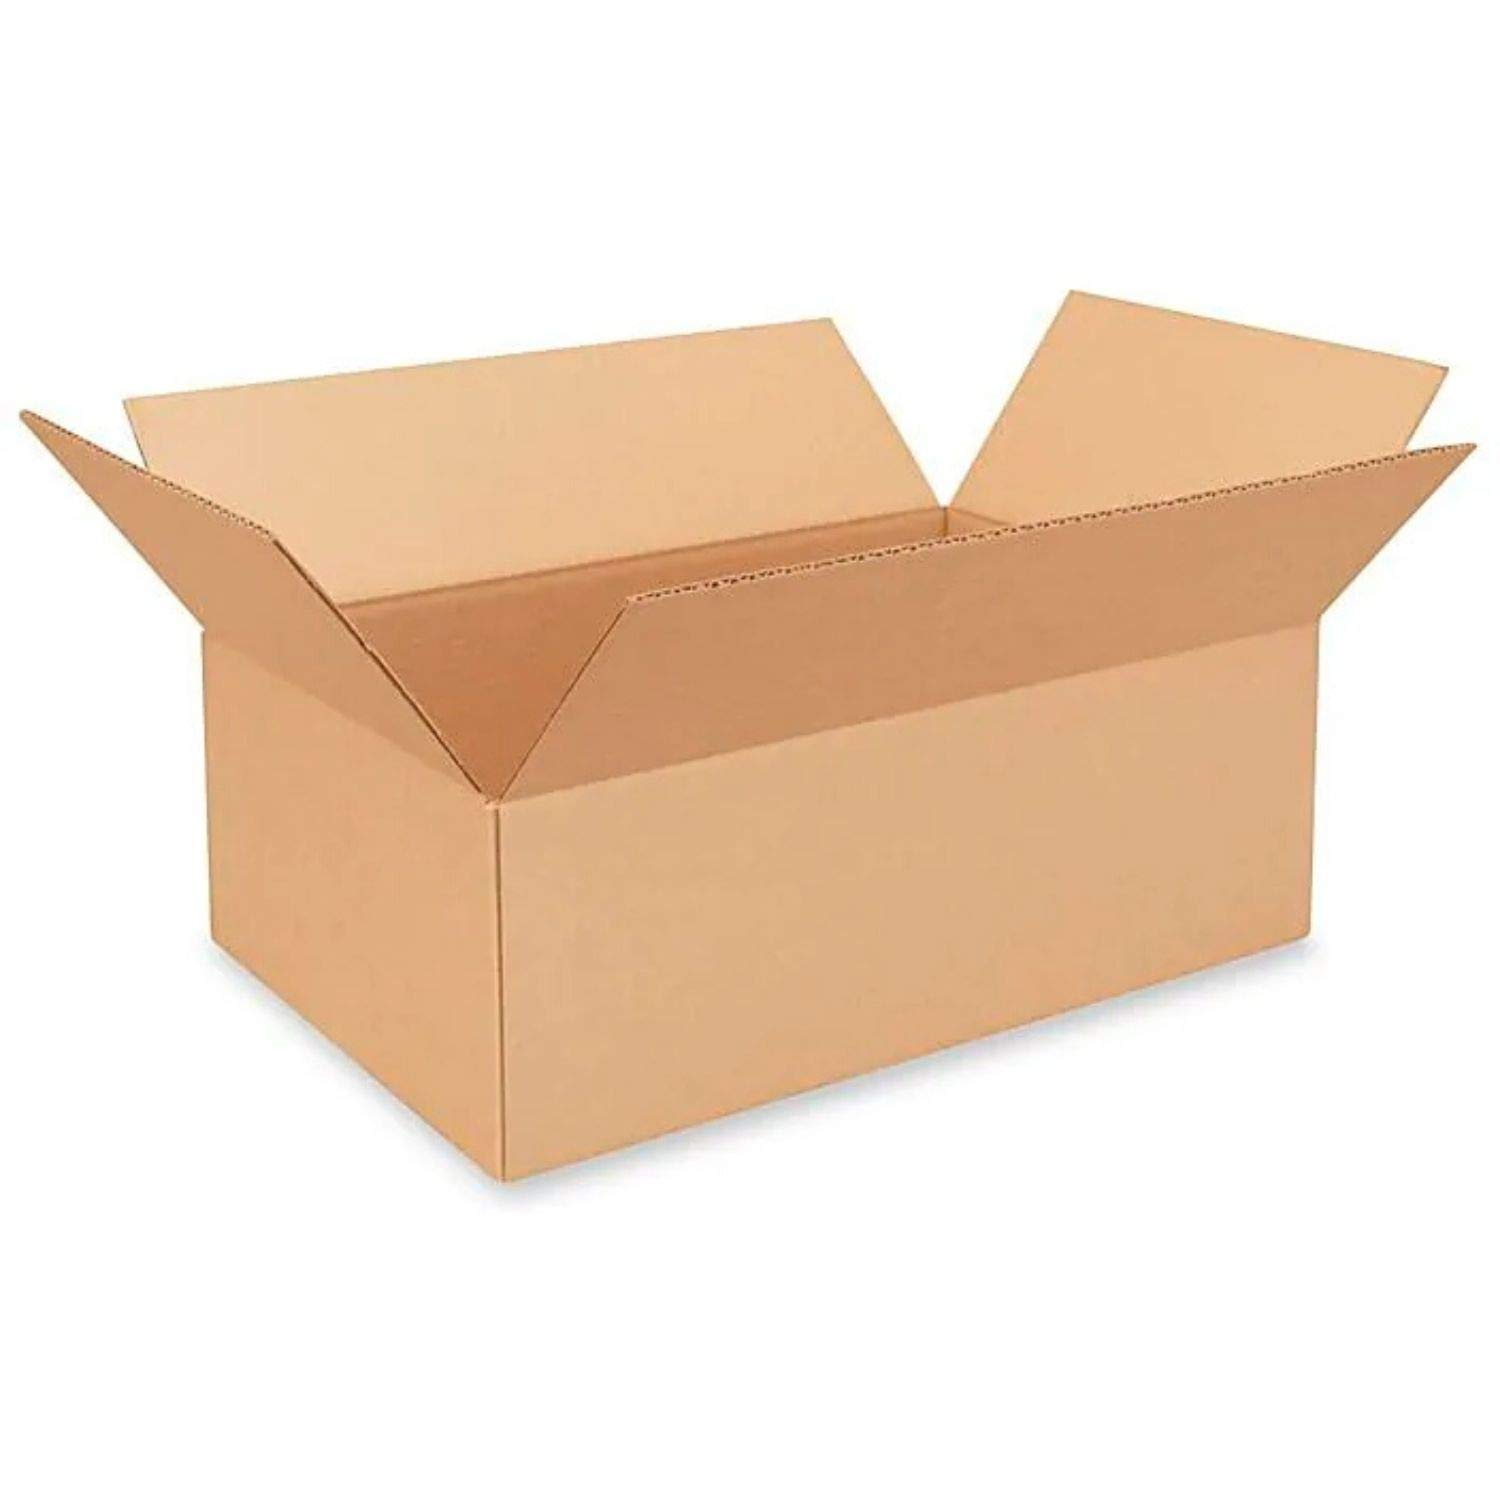 """IDL Packaging - B-18126-5 Medium Corrugated Shipping Boxes 18""""L x 12""""W x 6""""H (Pack of 5) - Excellent Choice of Strong Packing Boxes for USPS, UPS, FedEx Shipping"""